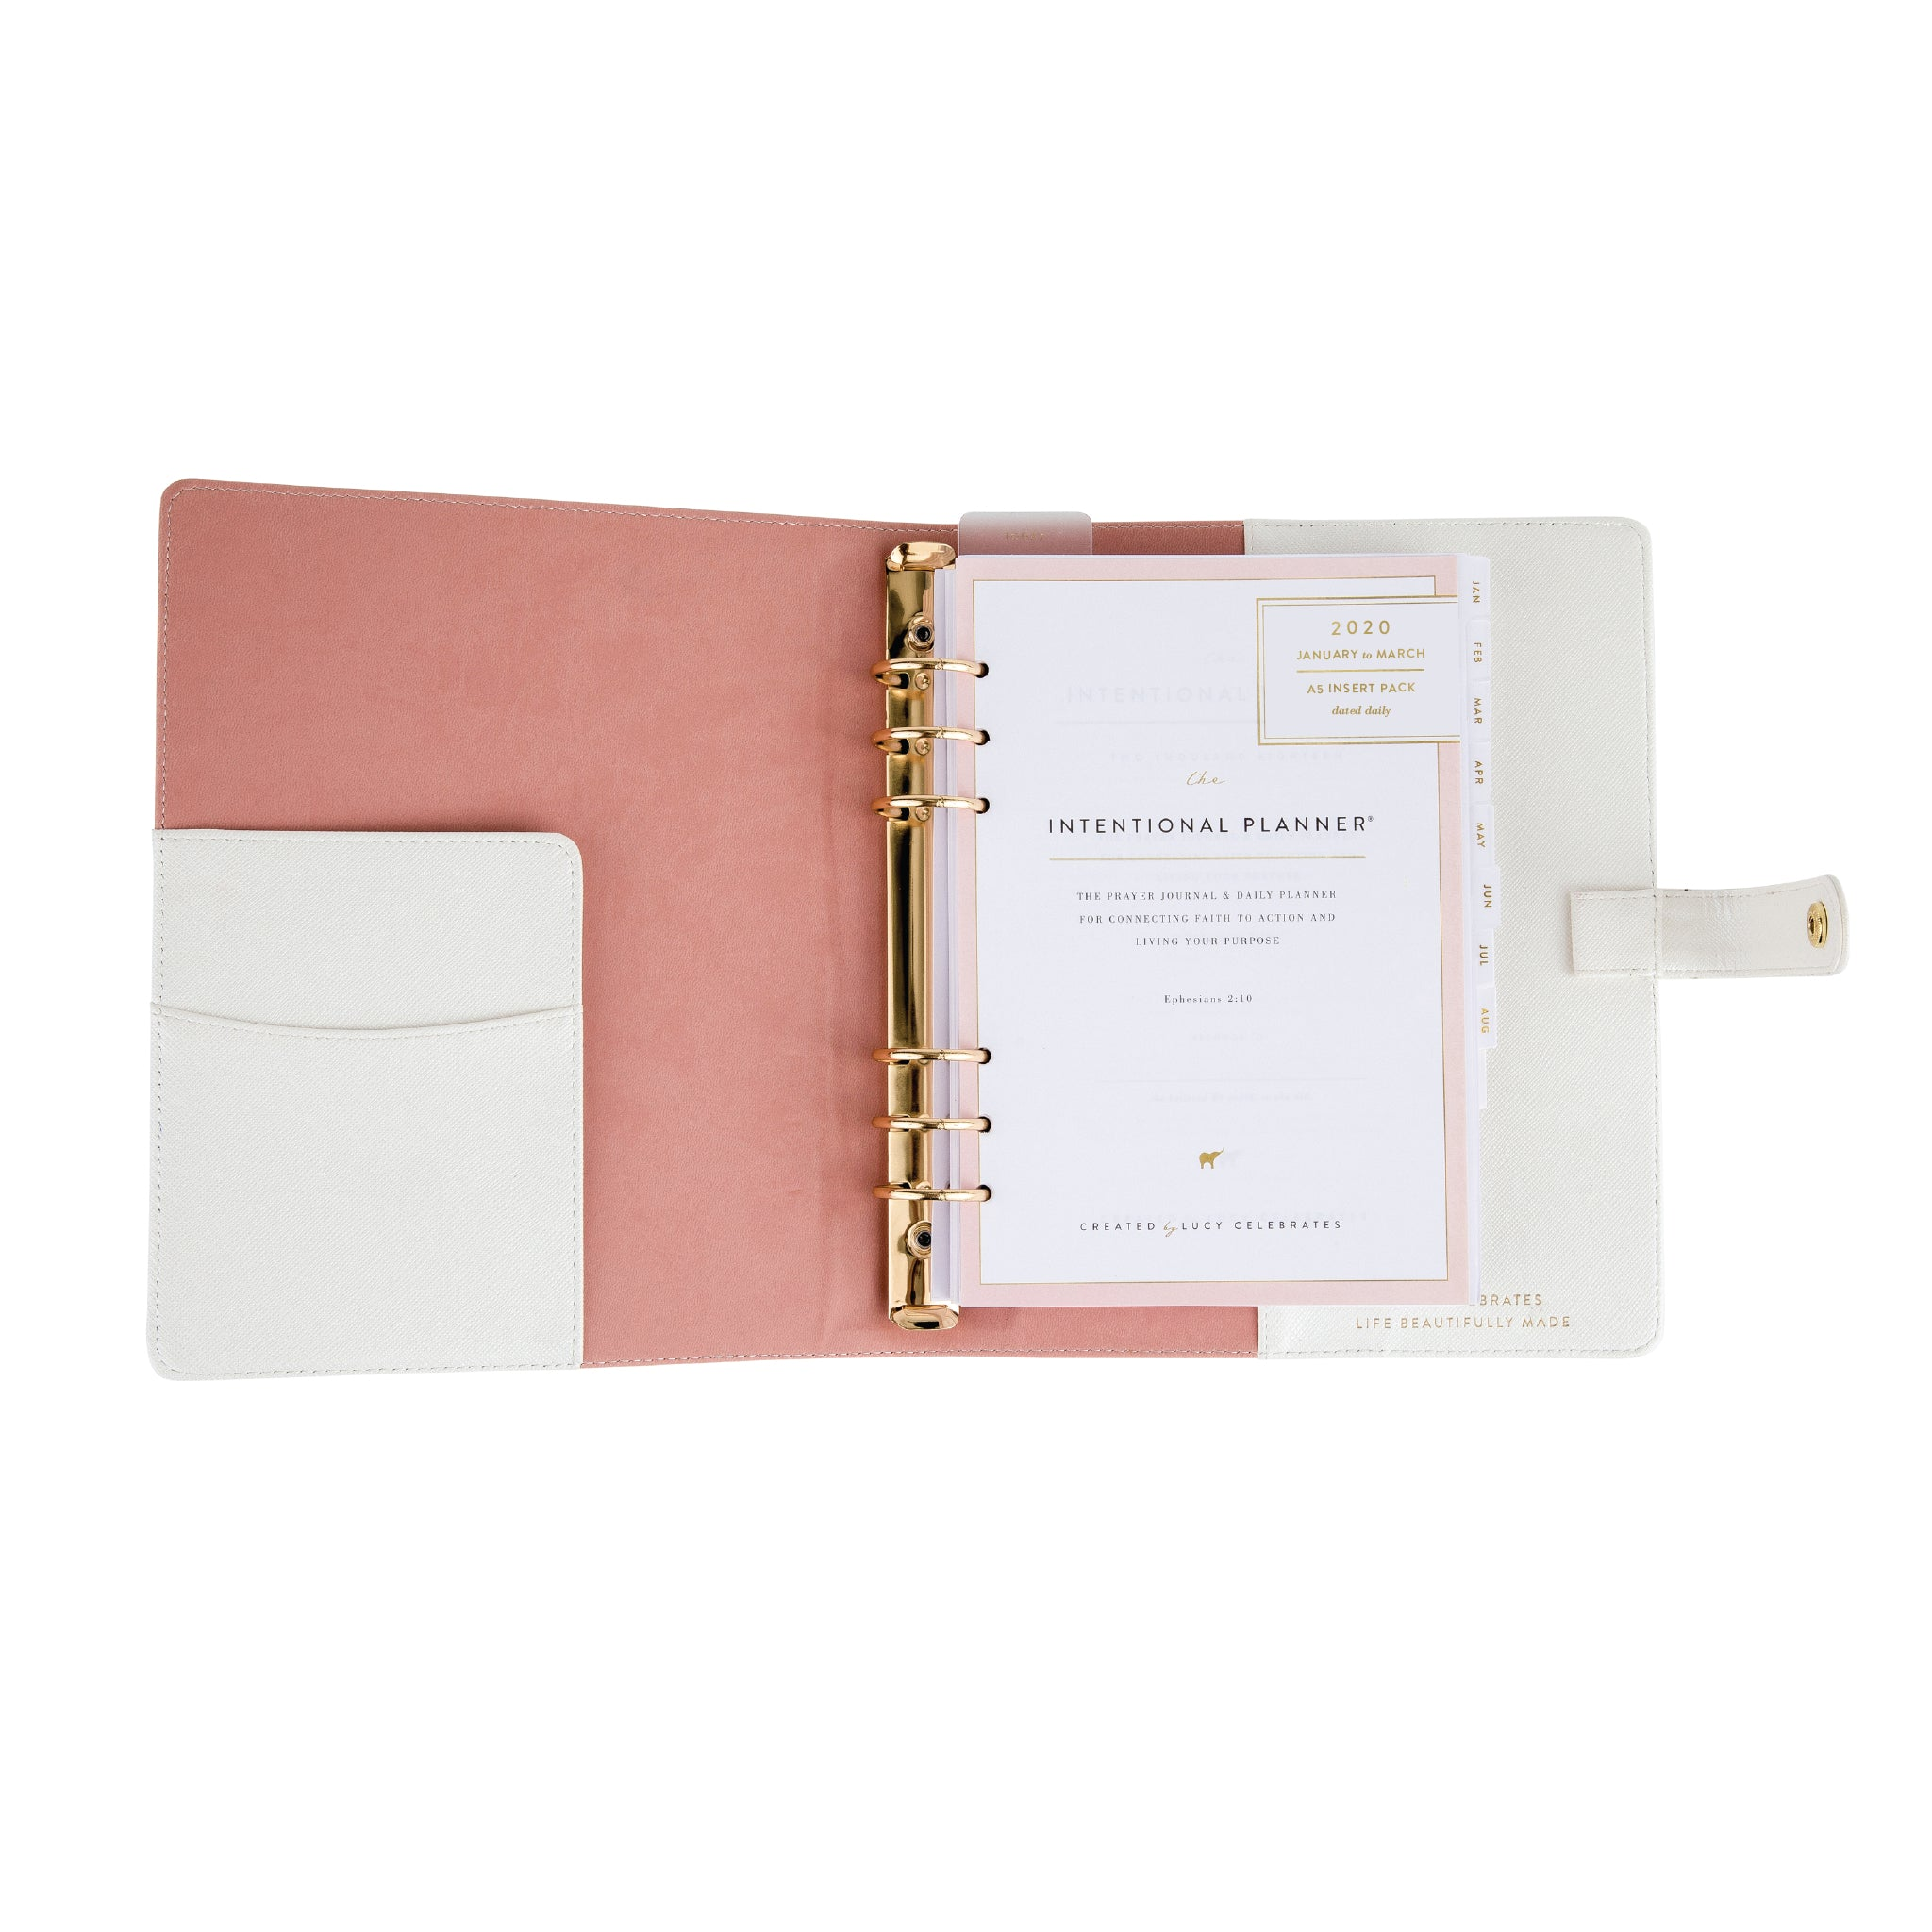 2020 Intentional Planner® White Bundle, Dated Daily